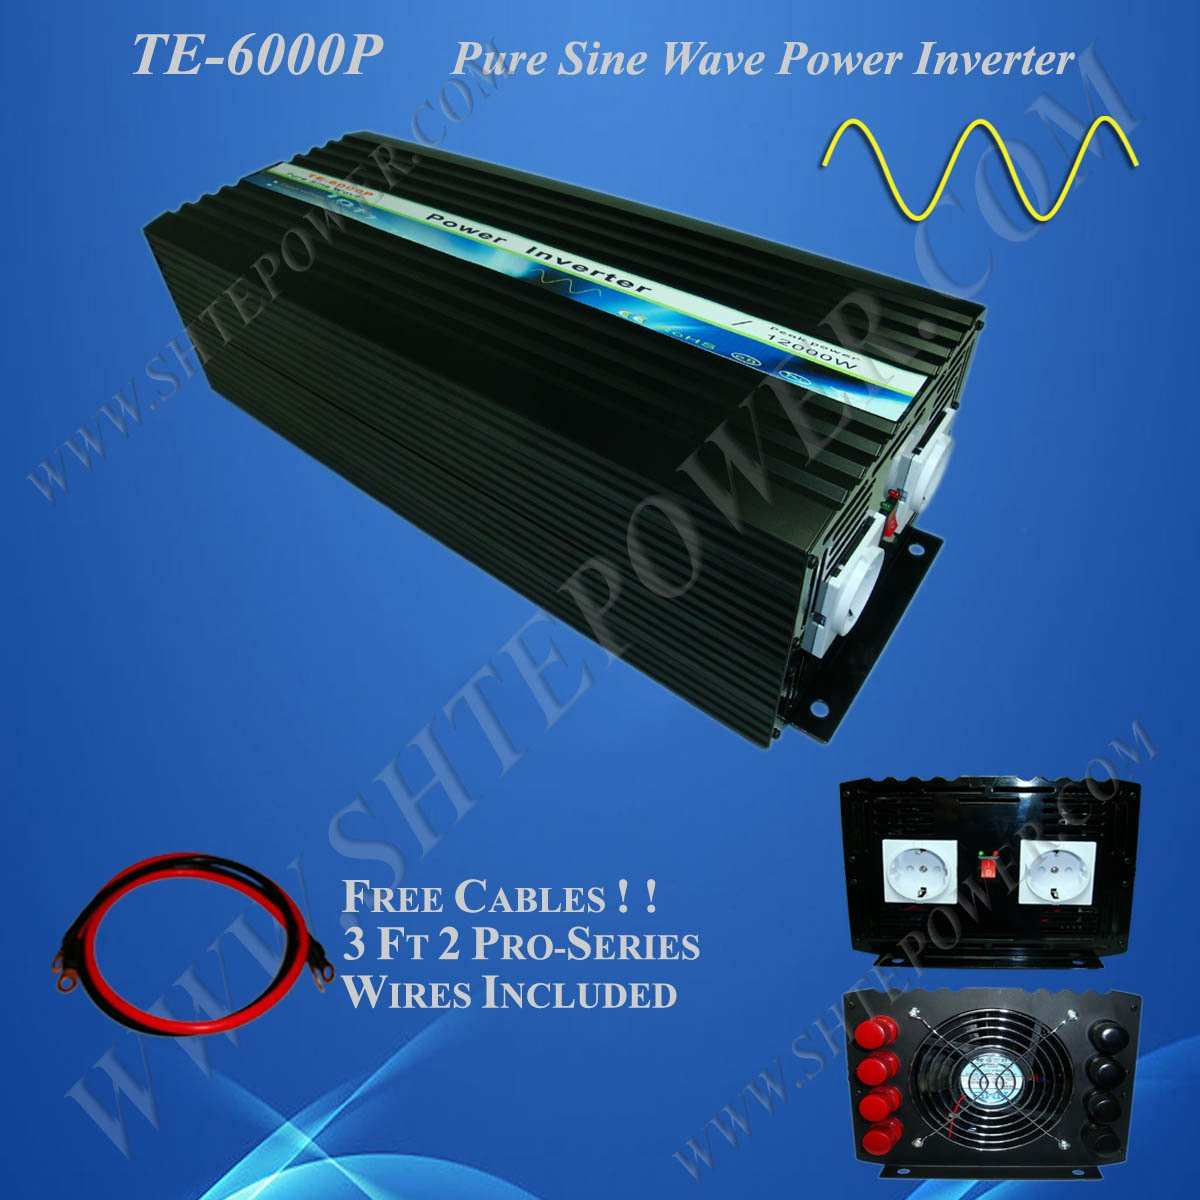 Off Grid Solar Power Inverter, 6000w 24vdc to 120vac inverter, Pure Sine Wave Power Invertor